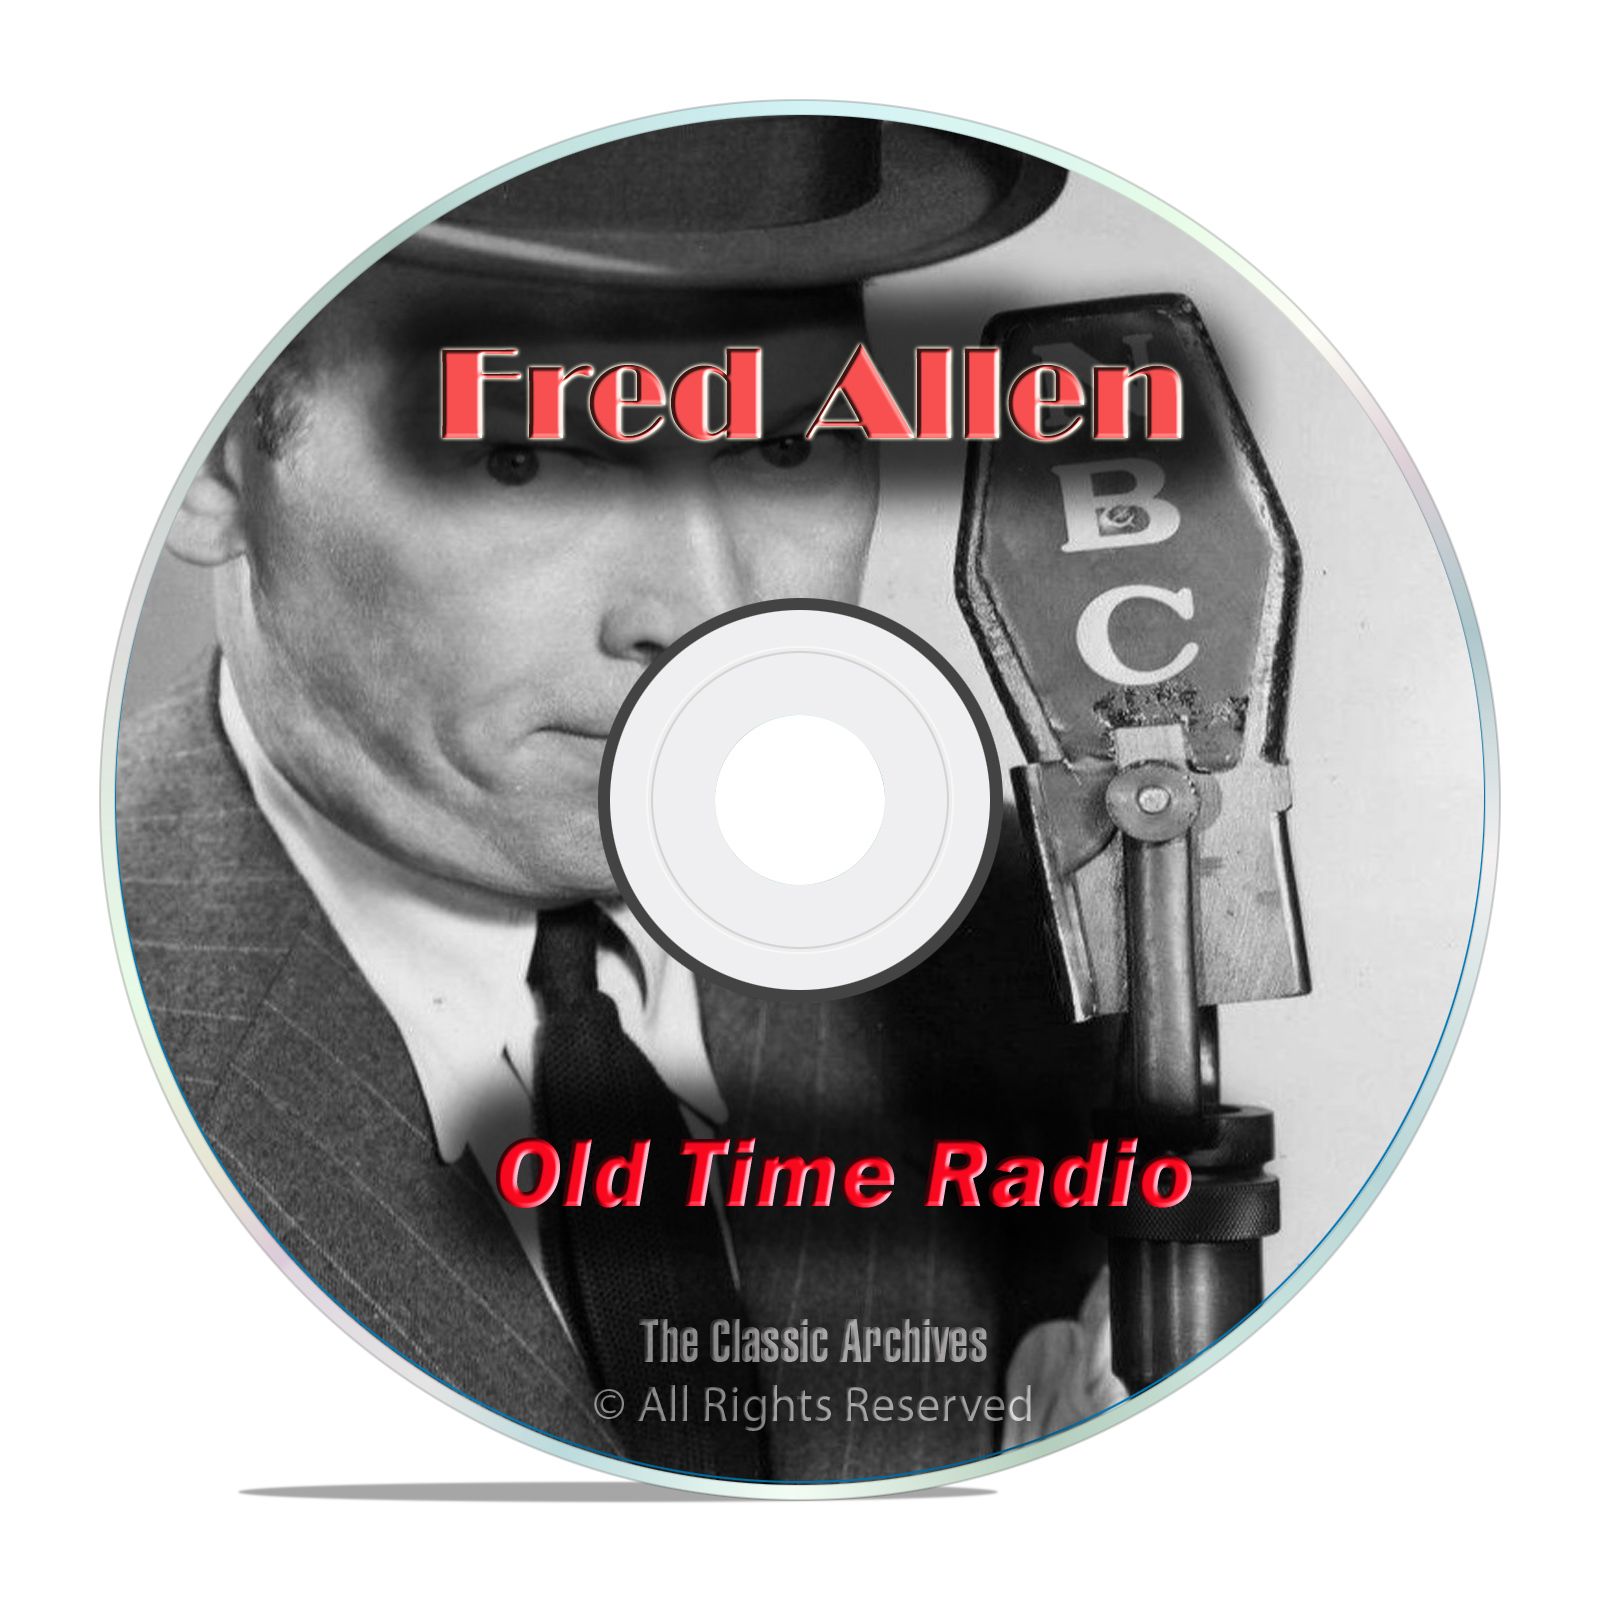 Fred Allen, Comedy, Music & Variety Shows, 849 Old Time Radio Shows, OTR